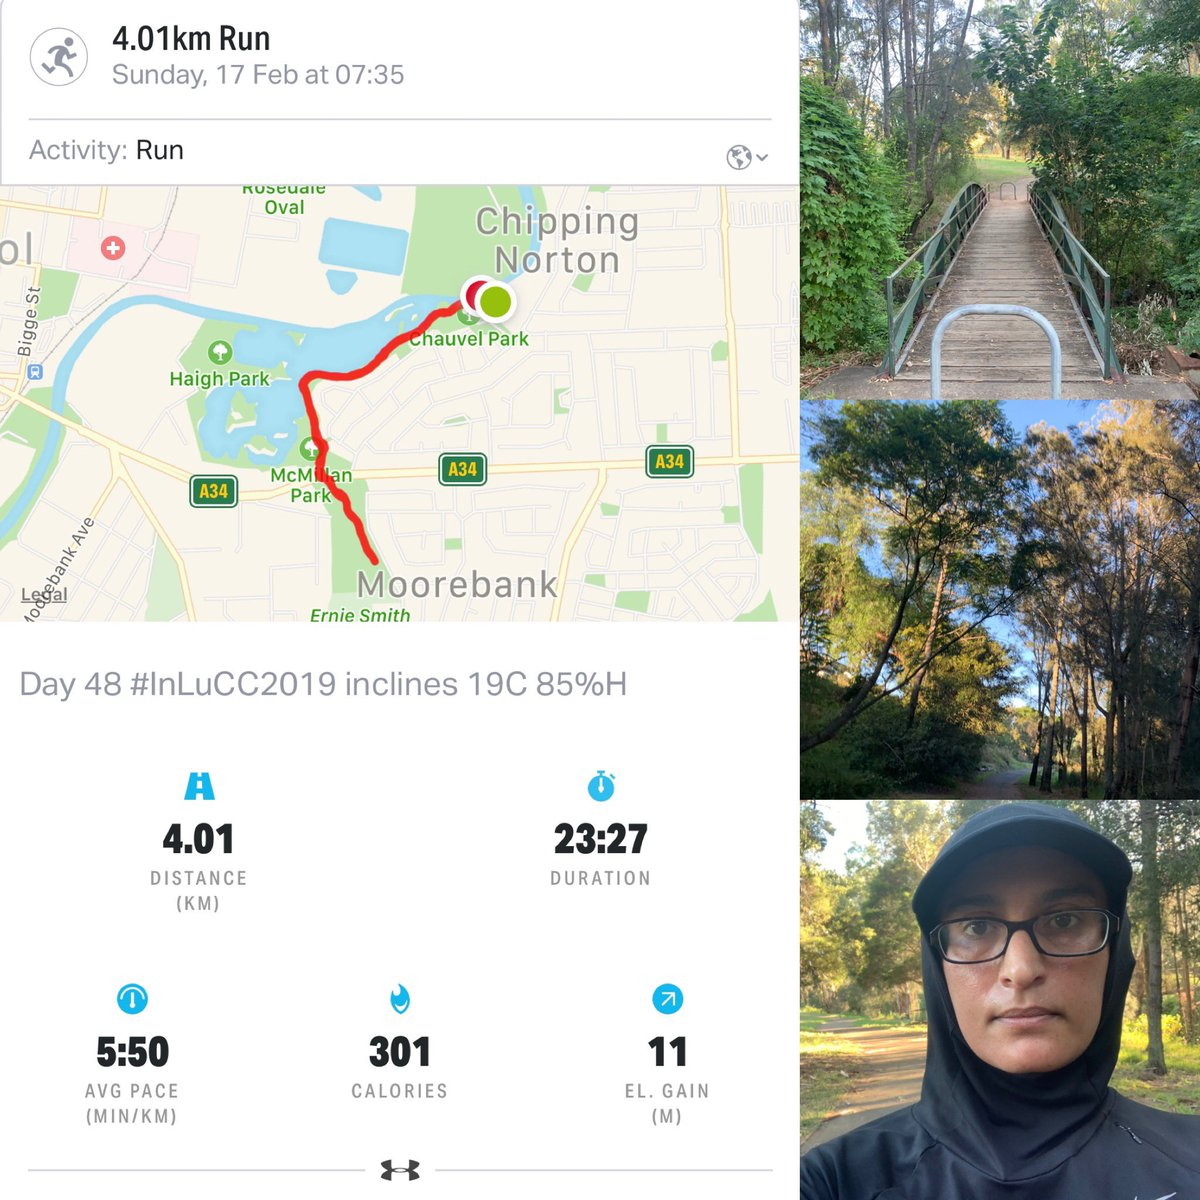 Day 48 #InLuCC2019 run for #LungCancerResearch at #InghamInstitute. Please click the link in my bio to the donation page. #LungCancer #LungCancerAwareness #FairGoForLungCancer #NotAllCancerIsPink #beatcancer #cancersucks #run365 #IAmAndIWill  <br>http://pic.twitter.com/62tSUMFMTV